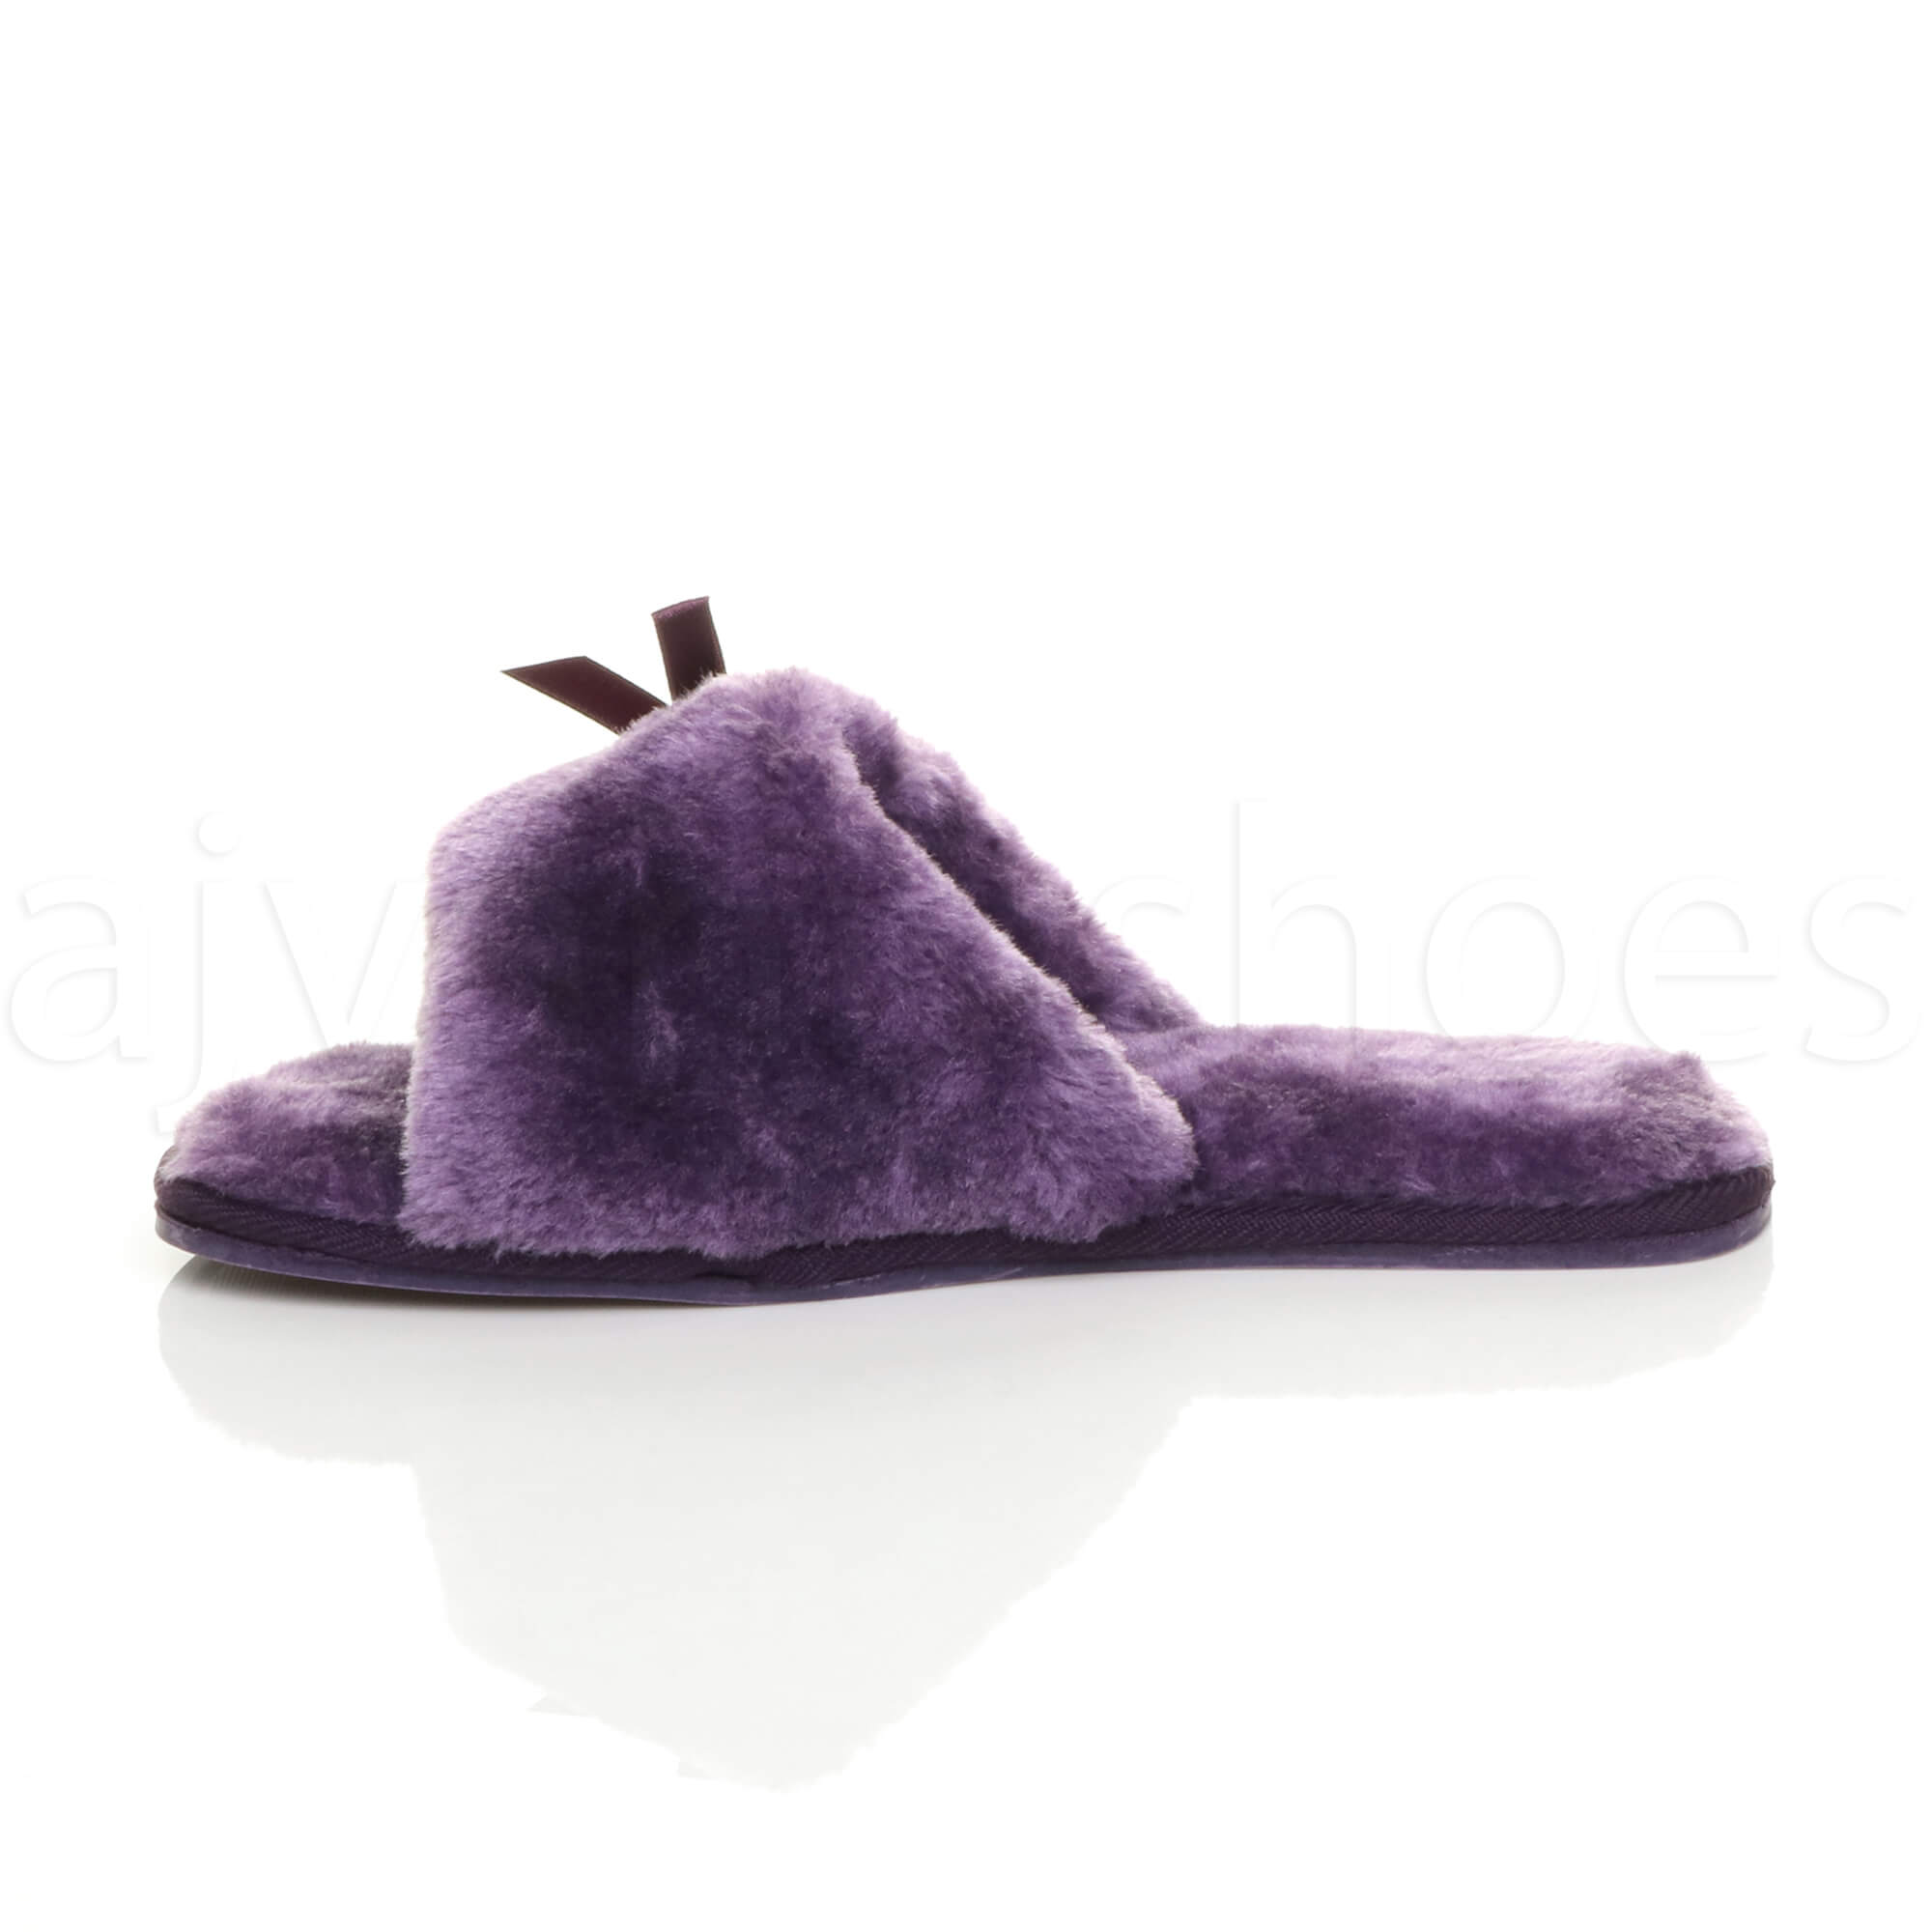 WOMENS-LADIES-FLAT-PEEP-TOE-BOW-LUXURY-COSY-FUR-LINED-SLIP-ON-SLIPPERS-SIZE thumbnail 60